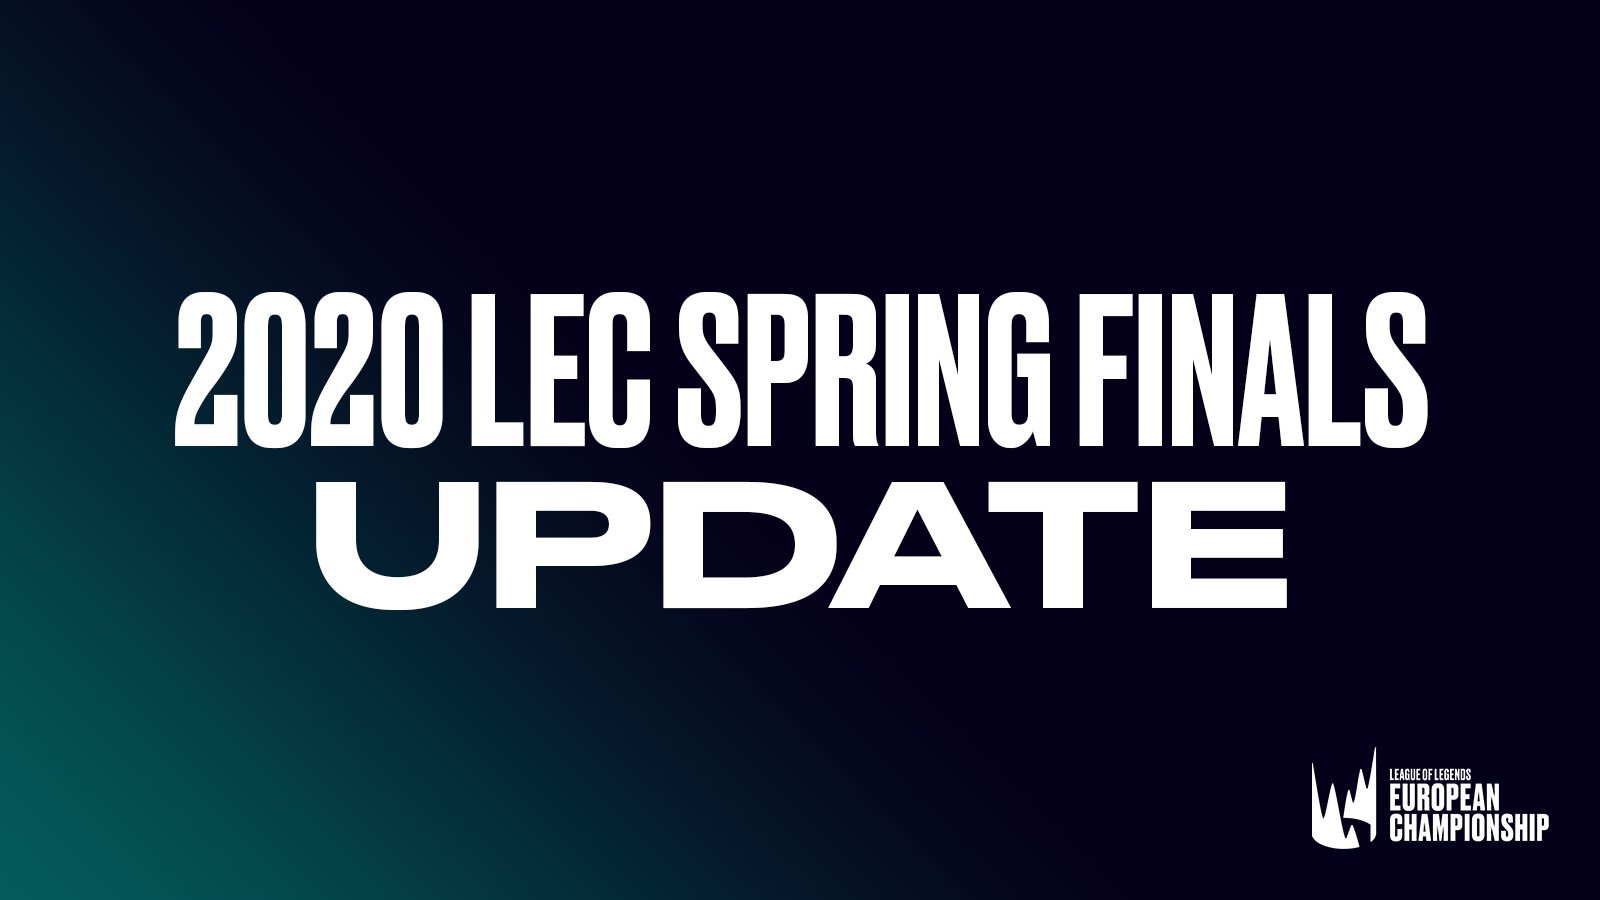 Lec Spring Finals In Budapest Cancelled As Coronavirus Concerns Plague Esports